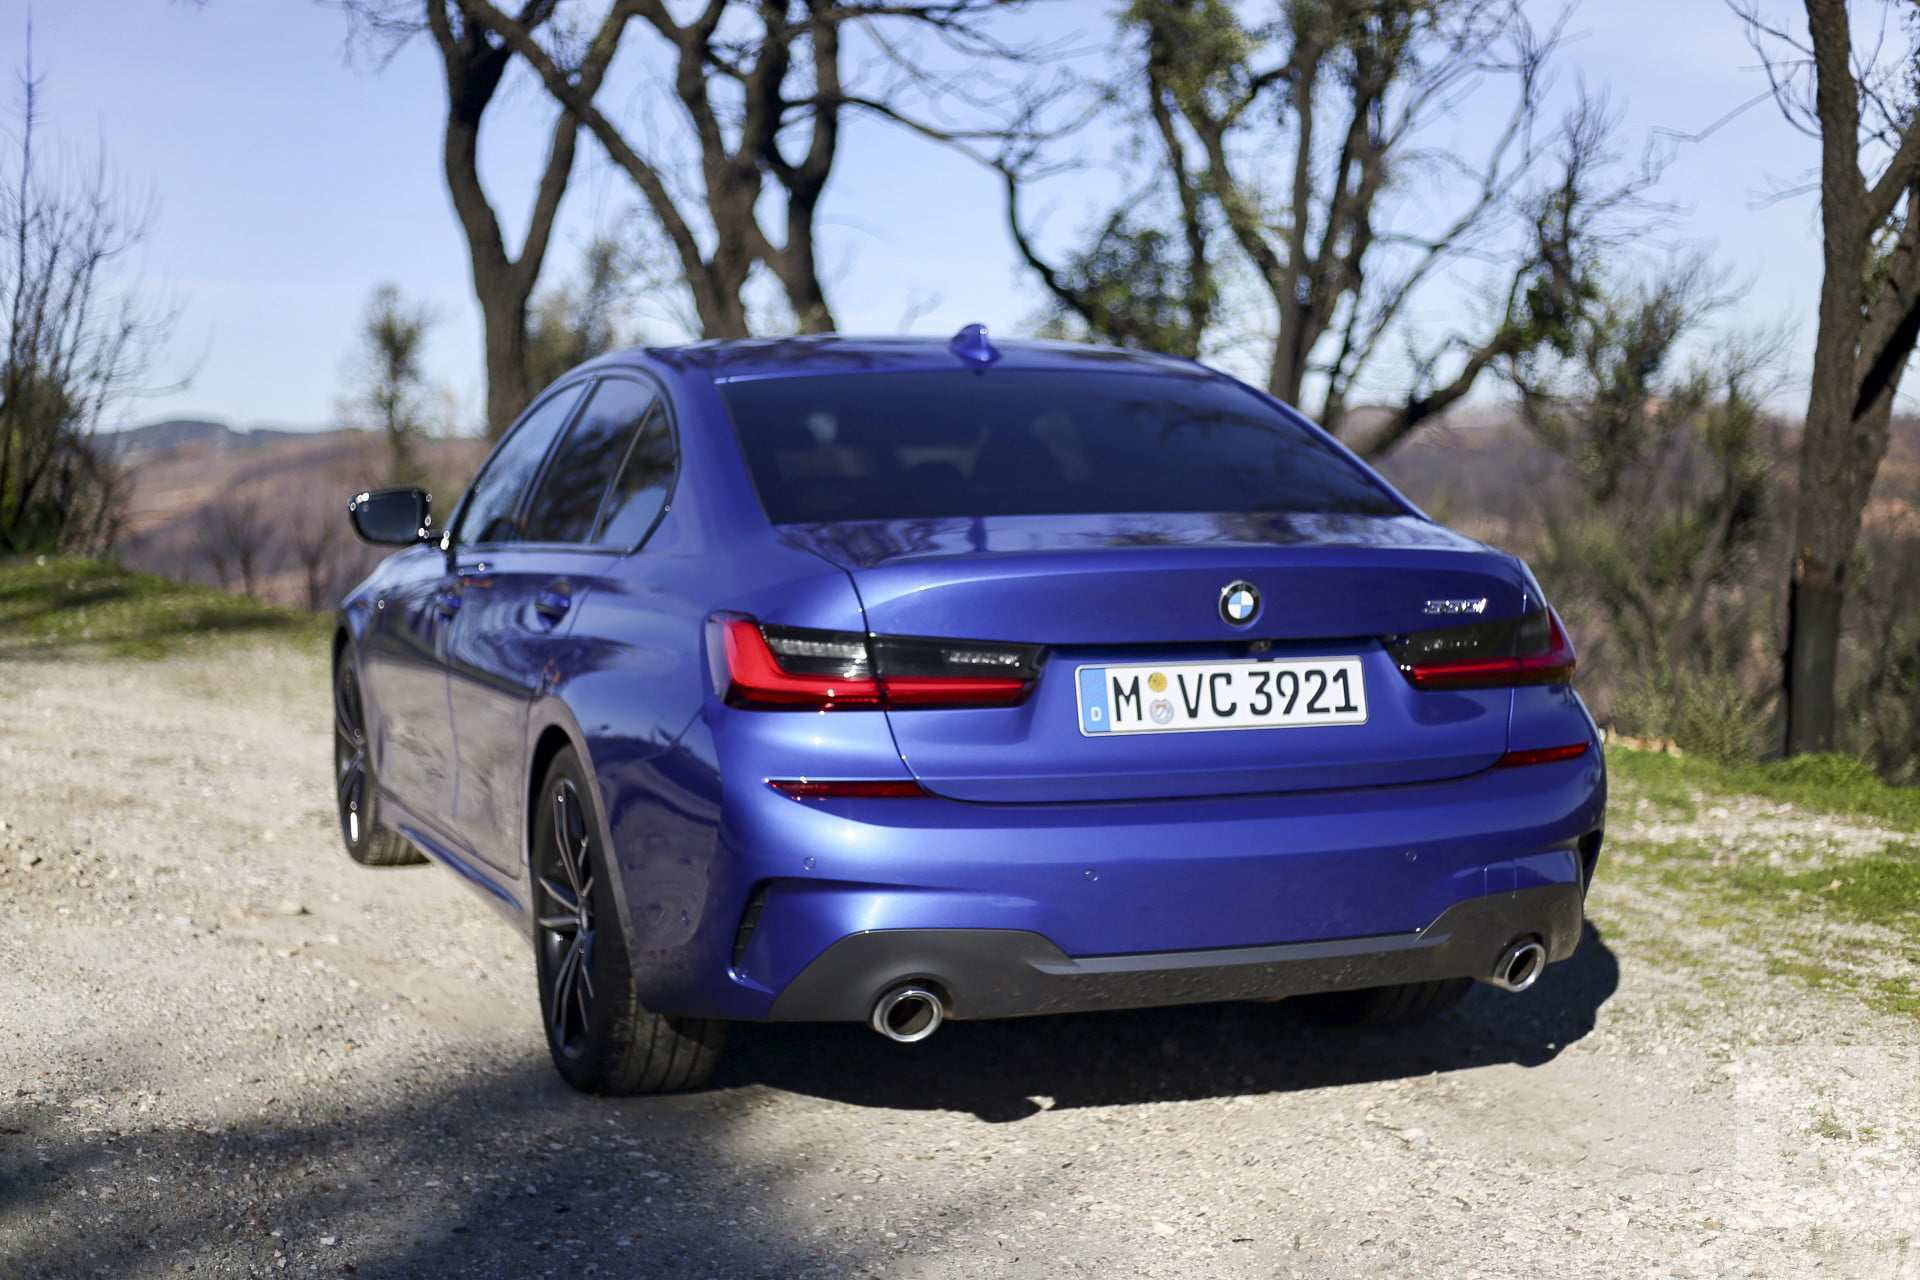 37 New 2020 Bmw 3 Series Images